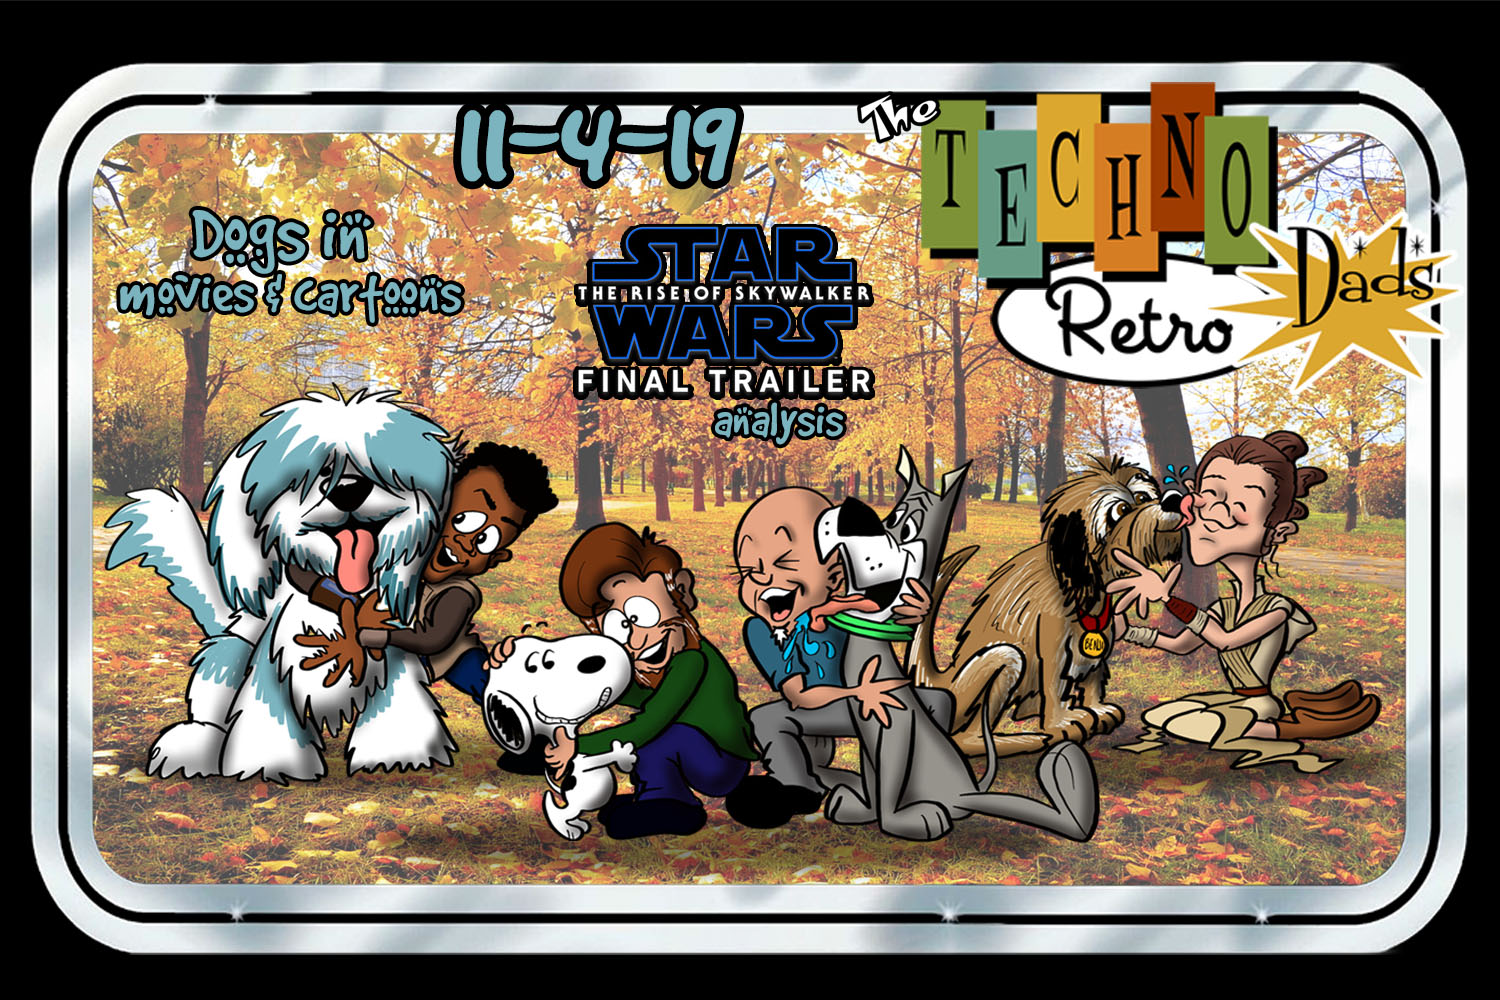 TechnoRetro Dads and Dogs discuss The Rise of Skywalker